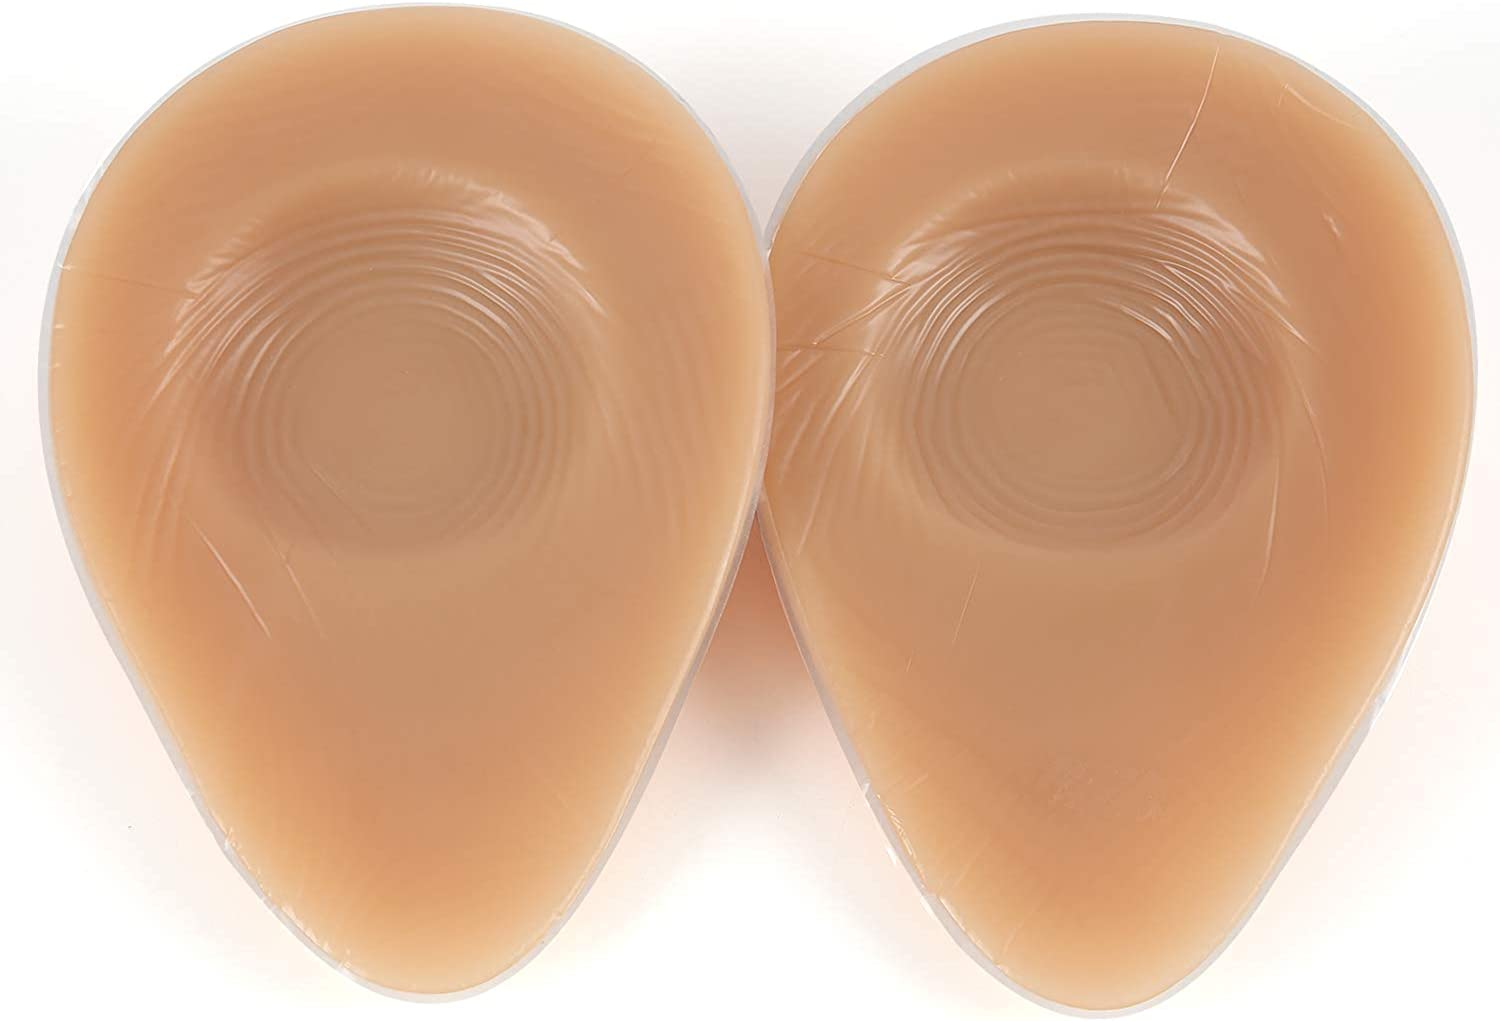 IVITA Silicone Breast Forms for Crossdressers Mastectomy Prosthesis Bra Pads Inserts Waterdrop Shape One Pair